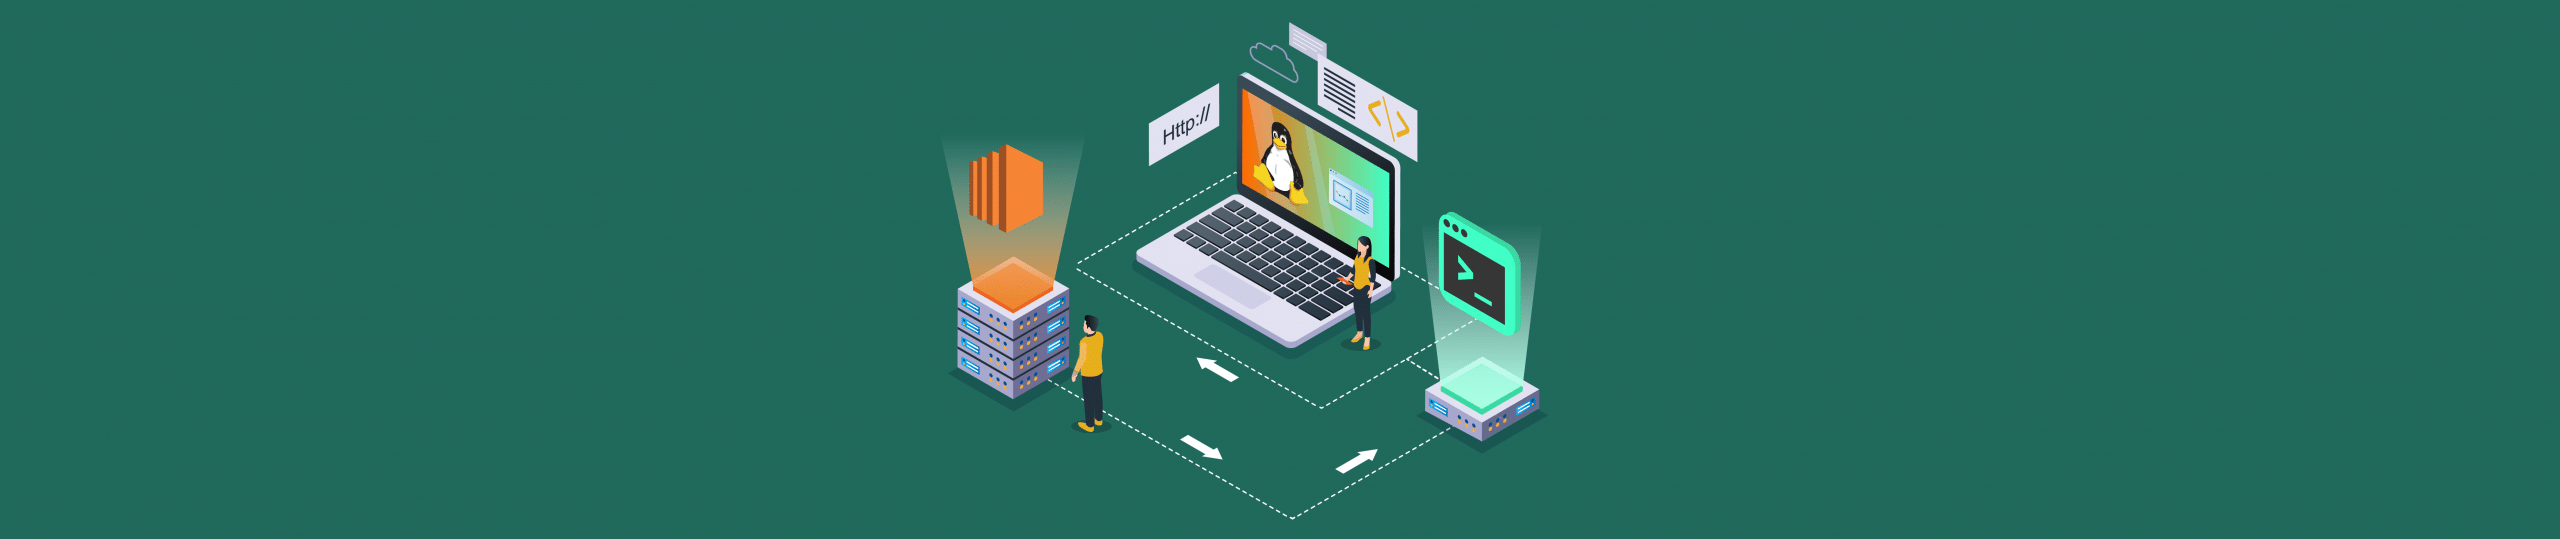 connect to aws ec2 Linux instance using SSH